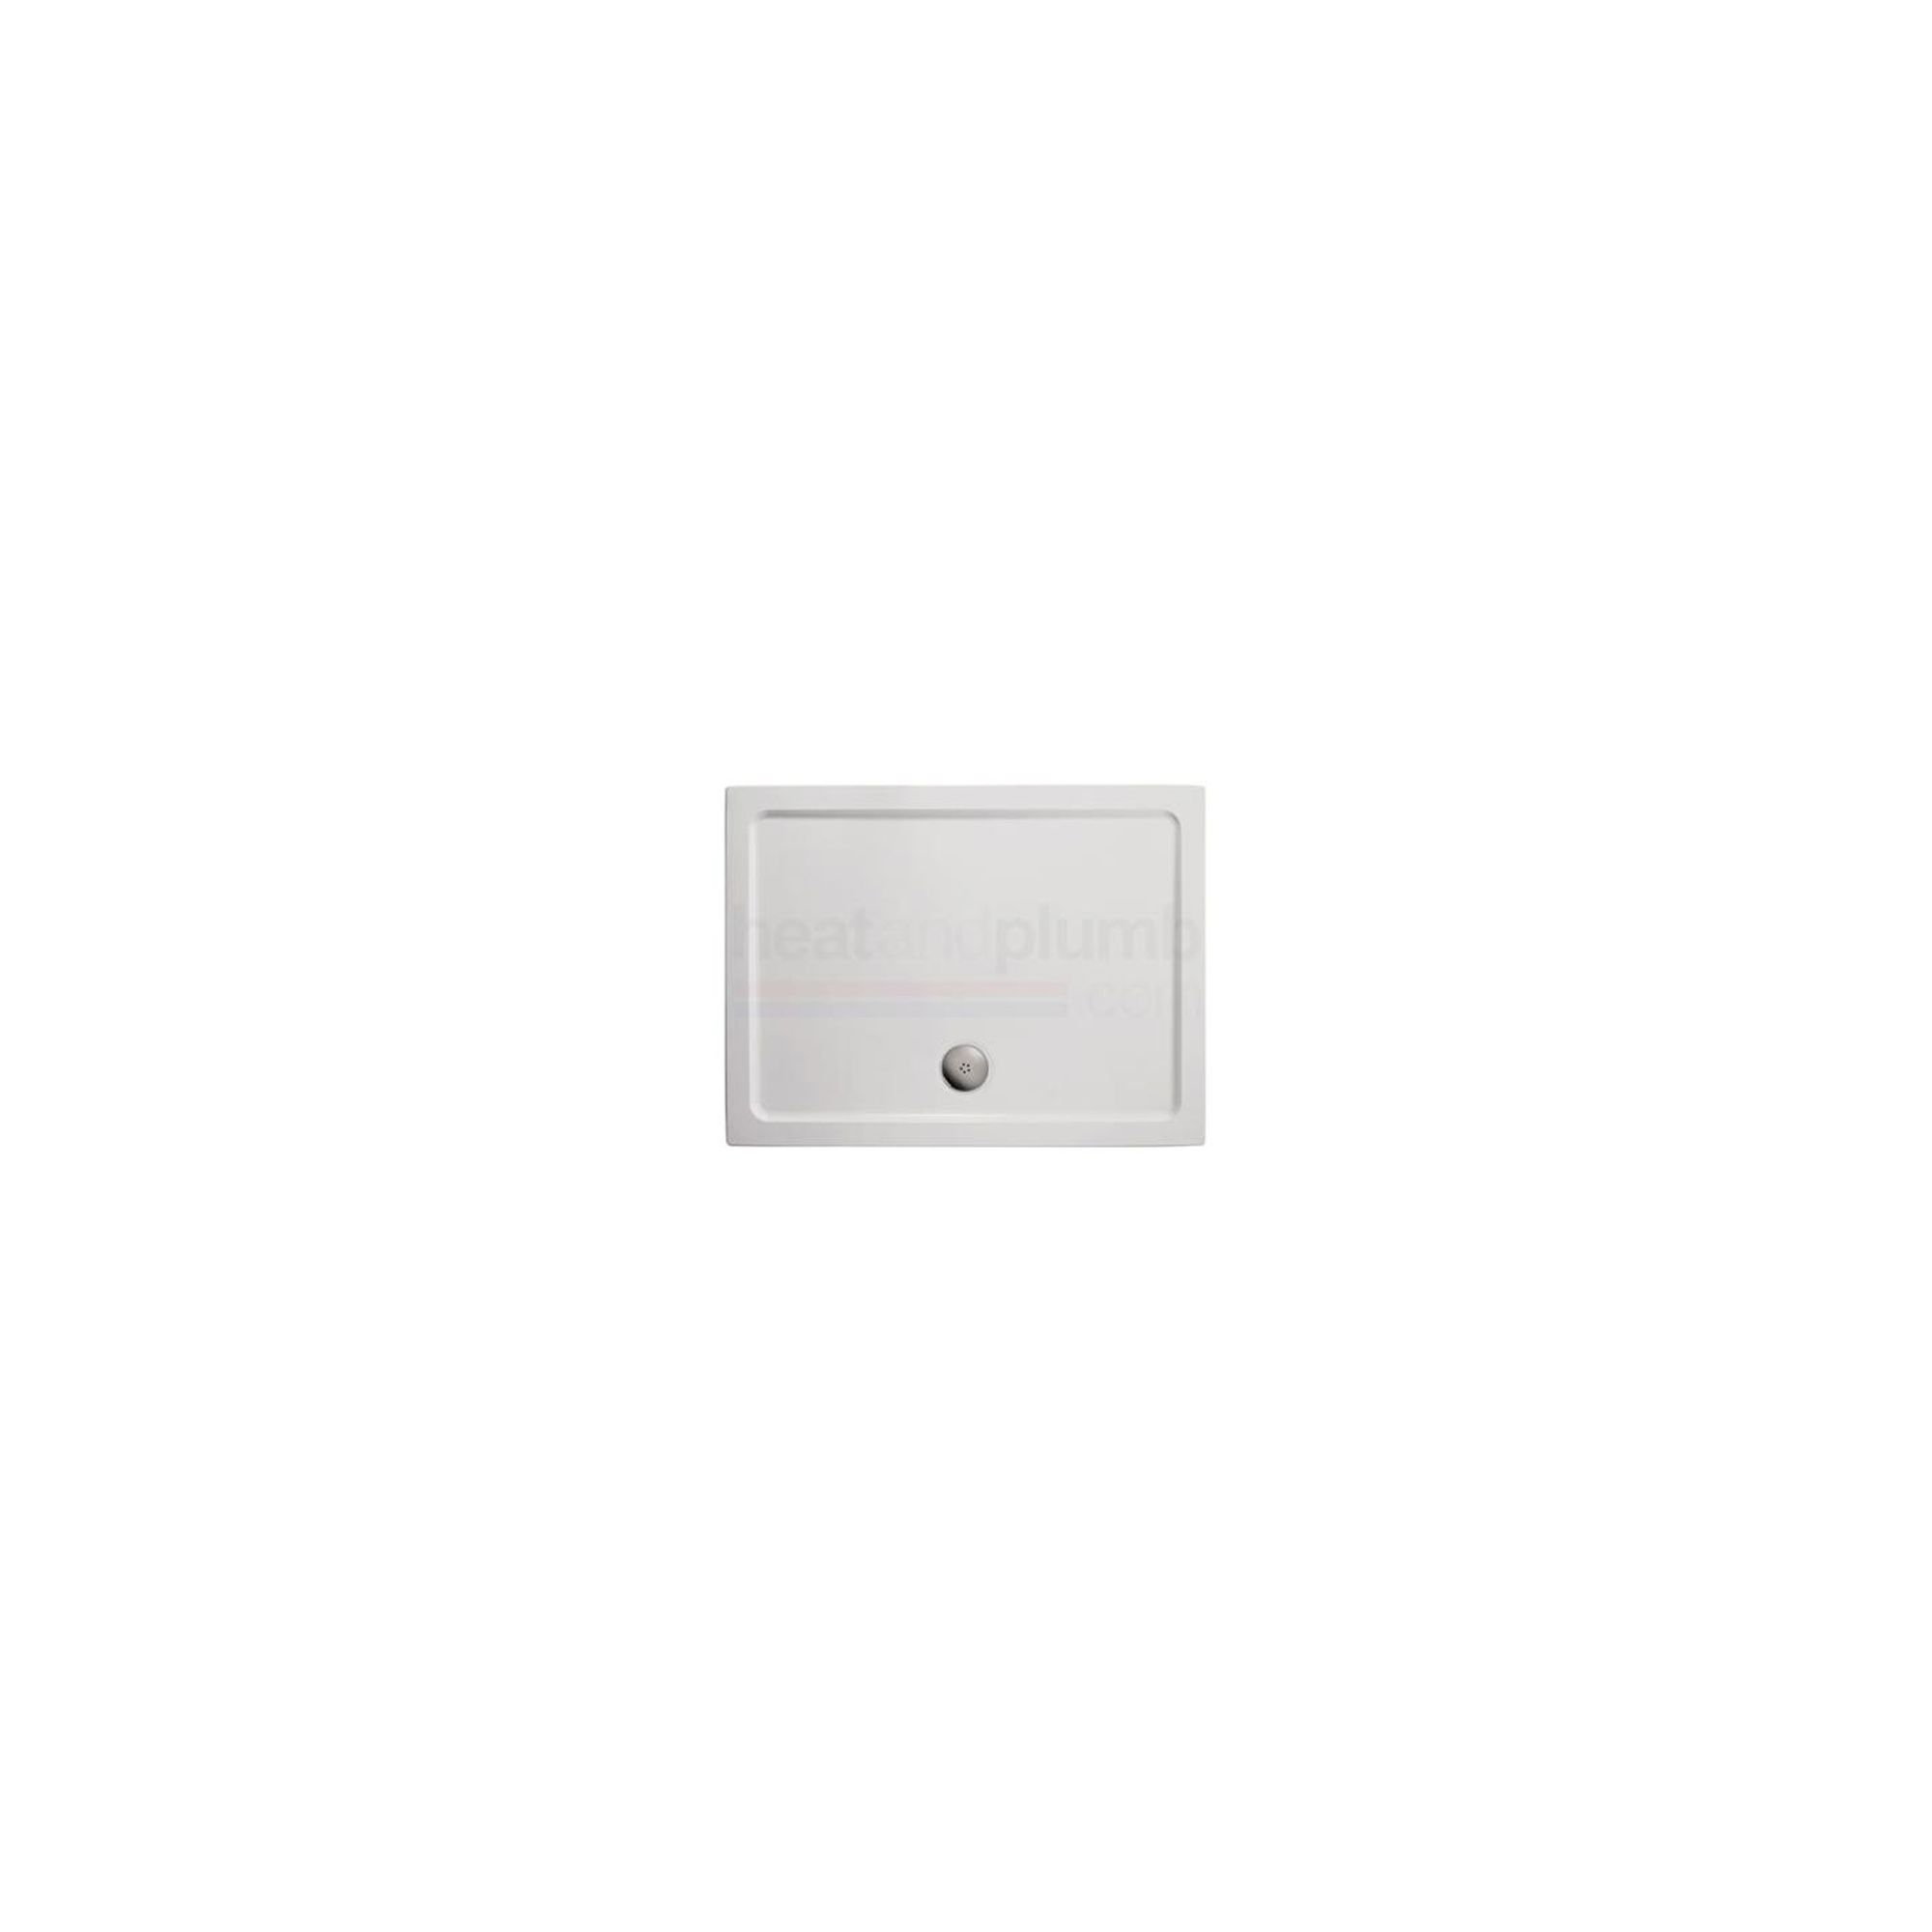 Ideal Standard Idealite Low Profile Rectangular Shower Tray 1700mm x 750mm Flat Top at Tescos Direct